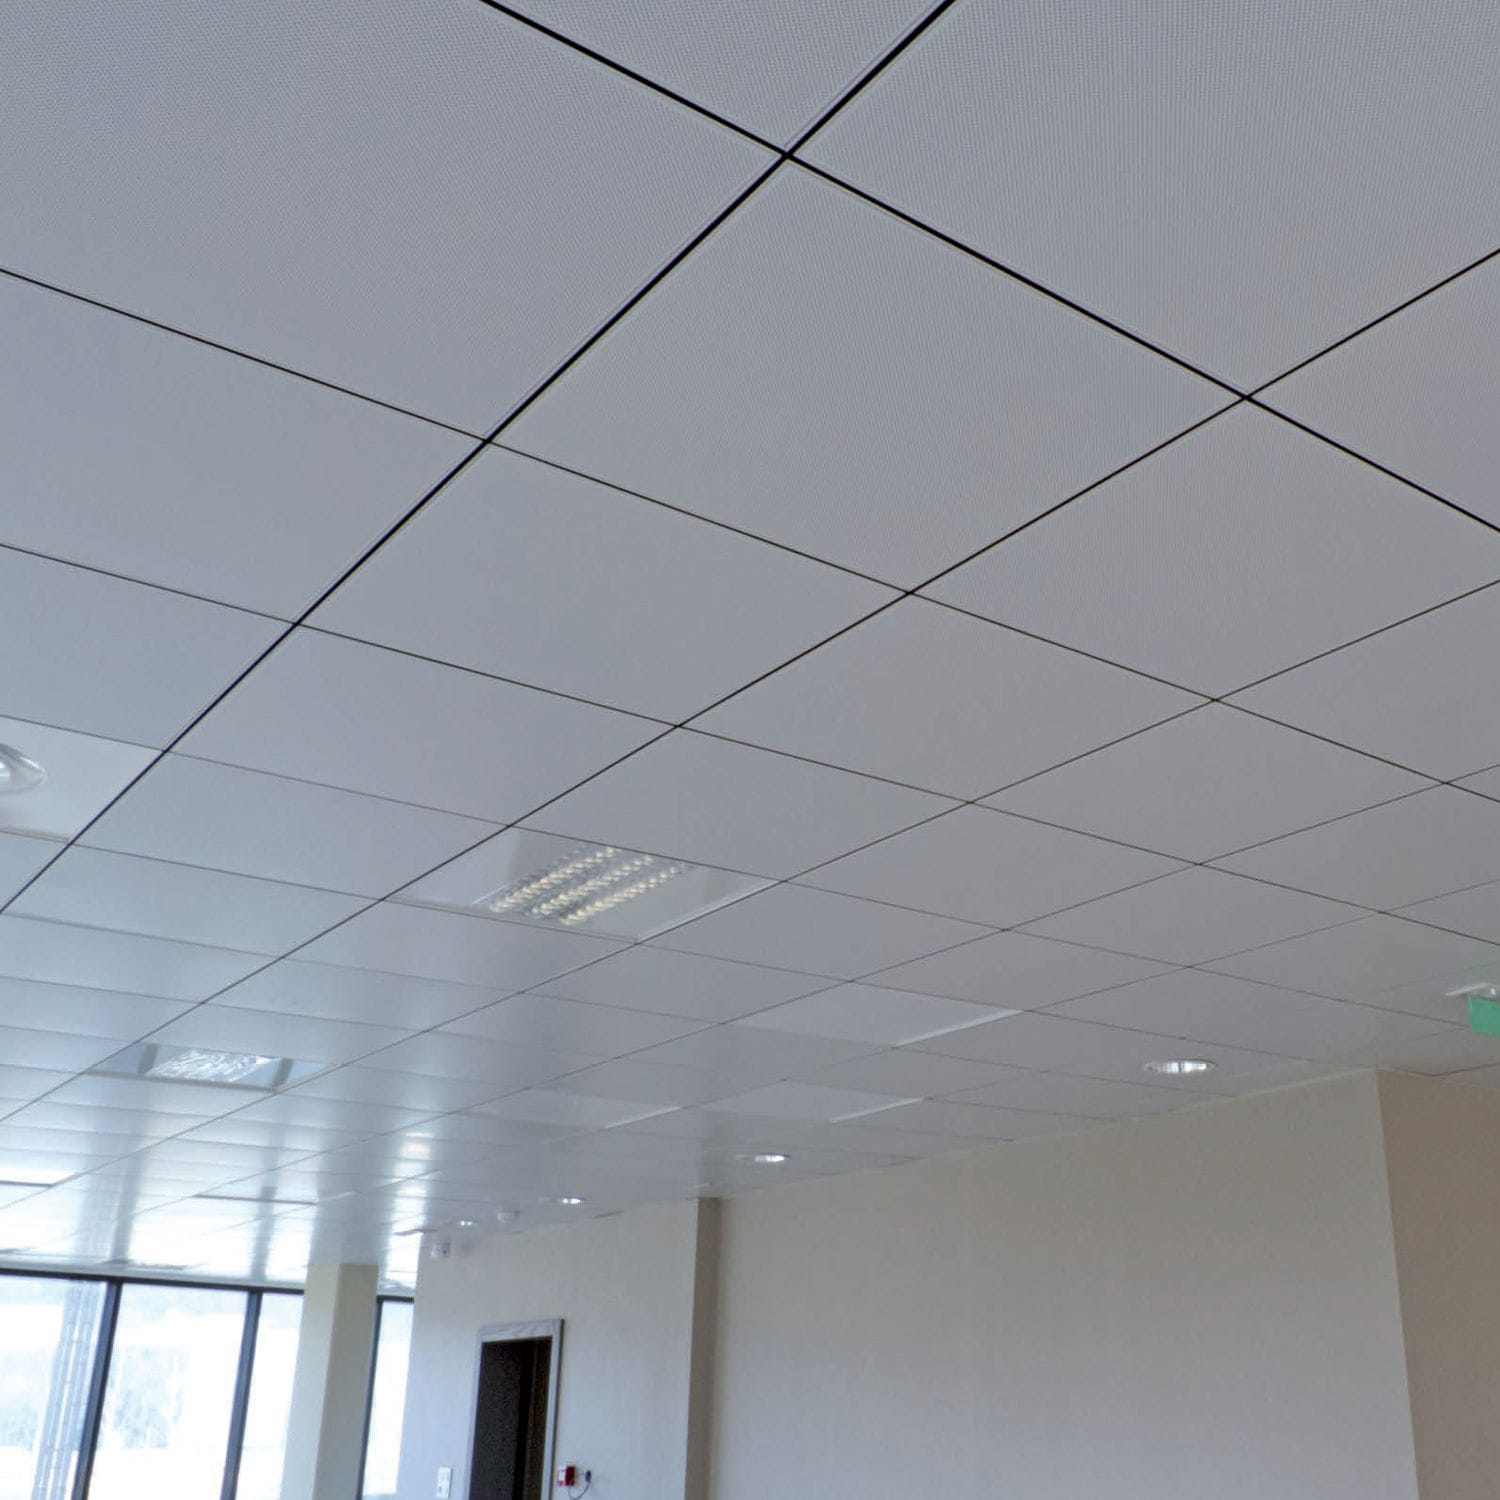 Metal suspended ceiling tile acoustic perforated h8 metal suspended ceiling tile acoustic perforated h8 dailygadgetfo Images